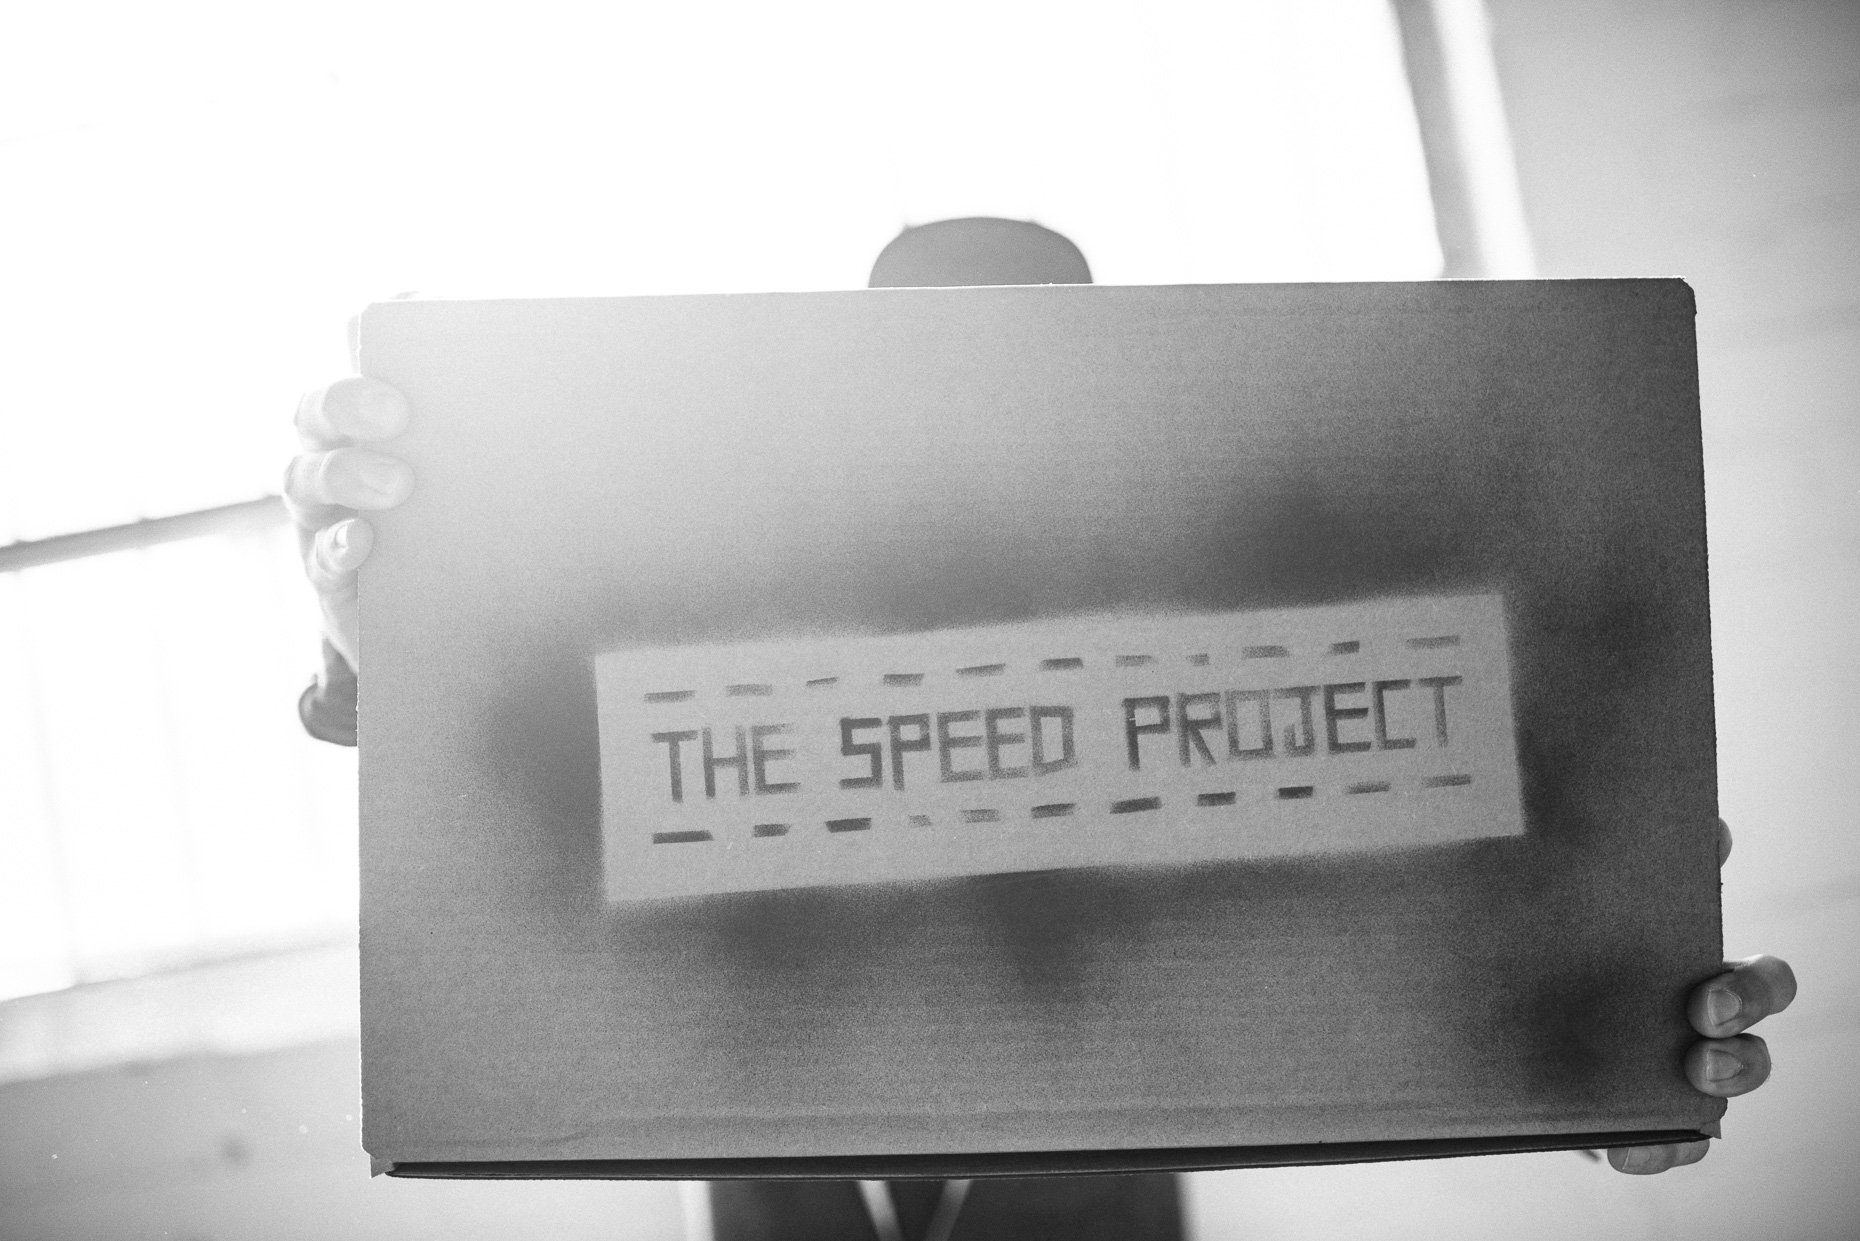 RT_20180329_THE_SPEED_PROJECT-8551